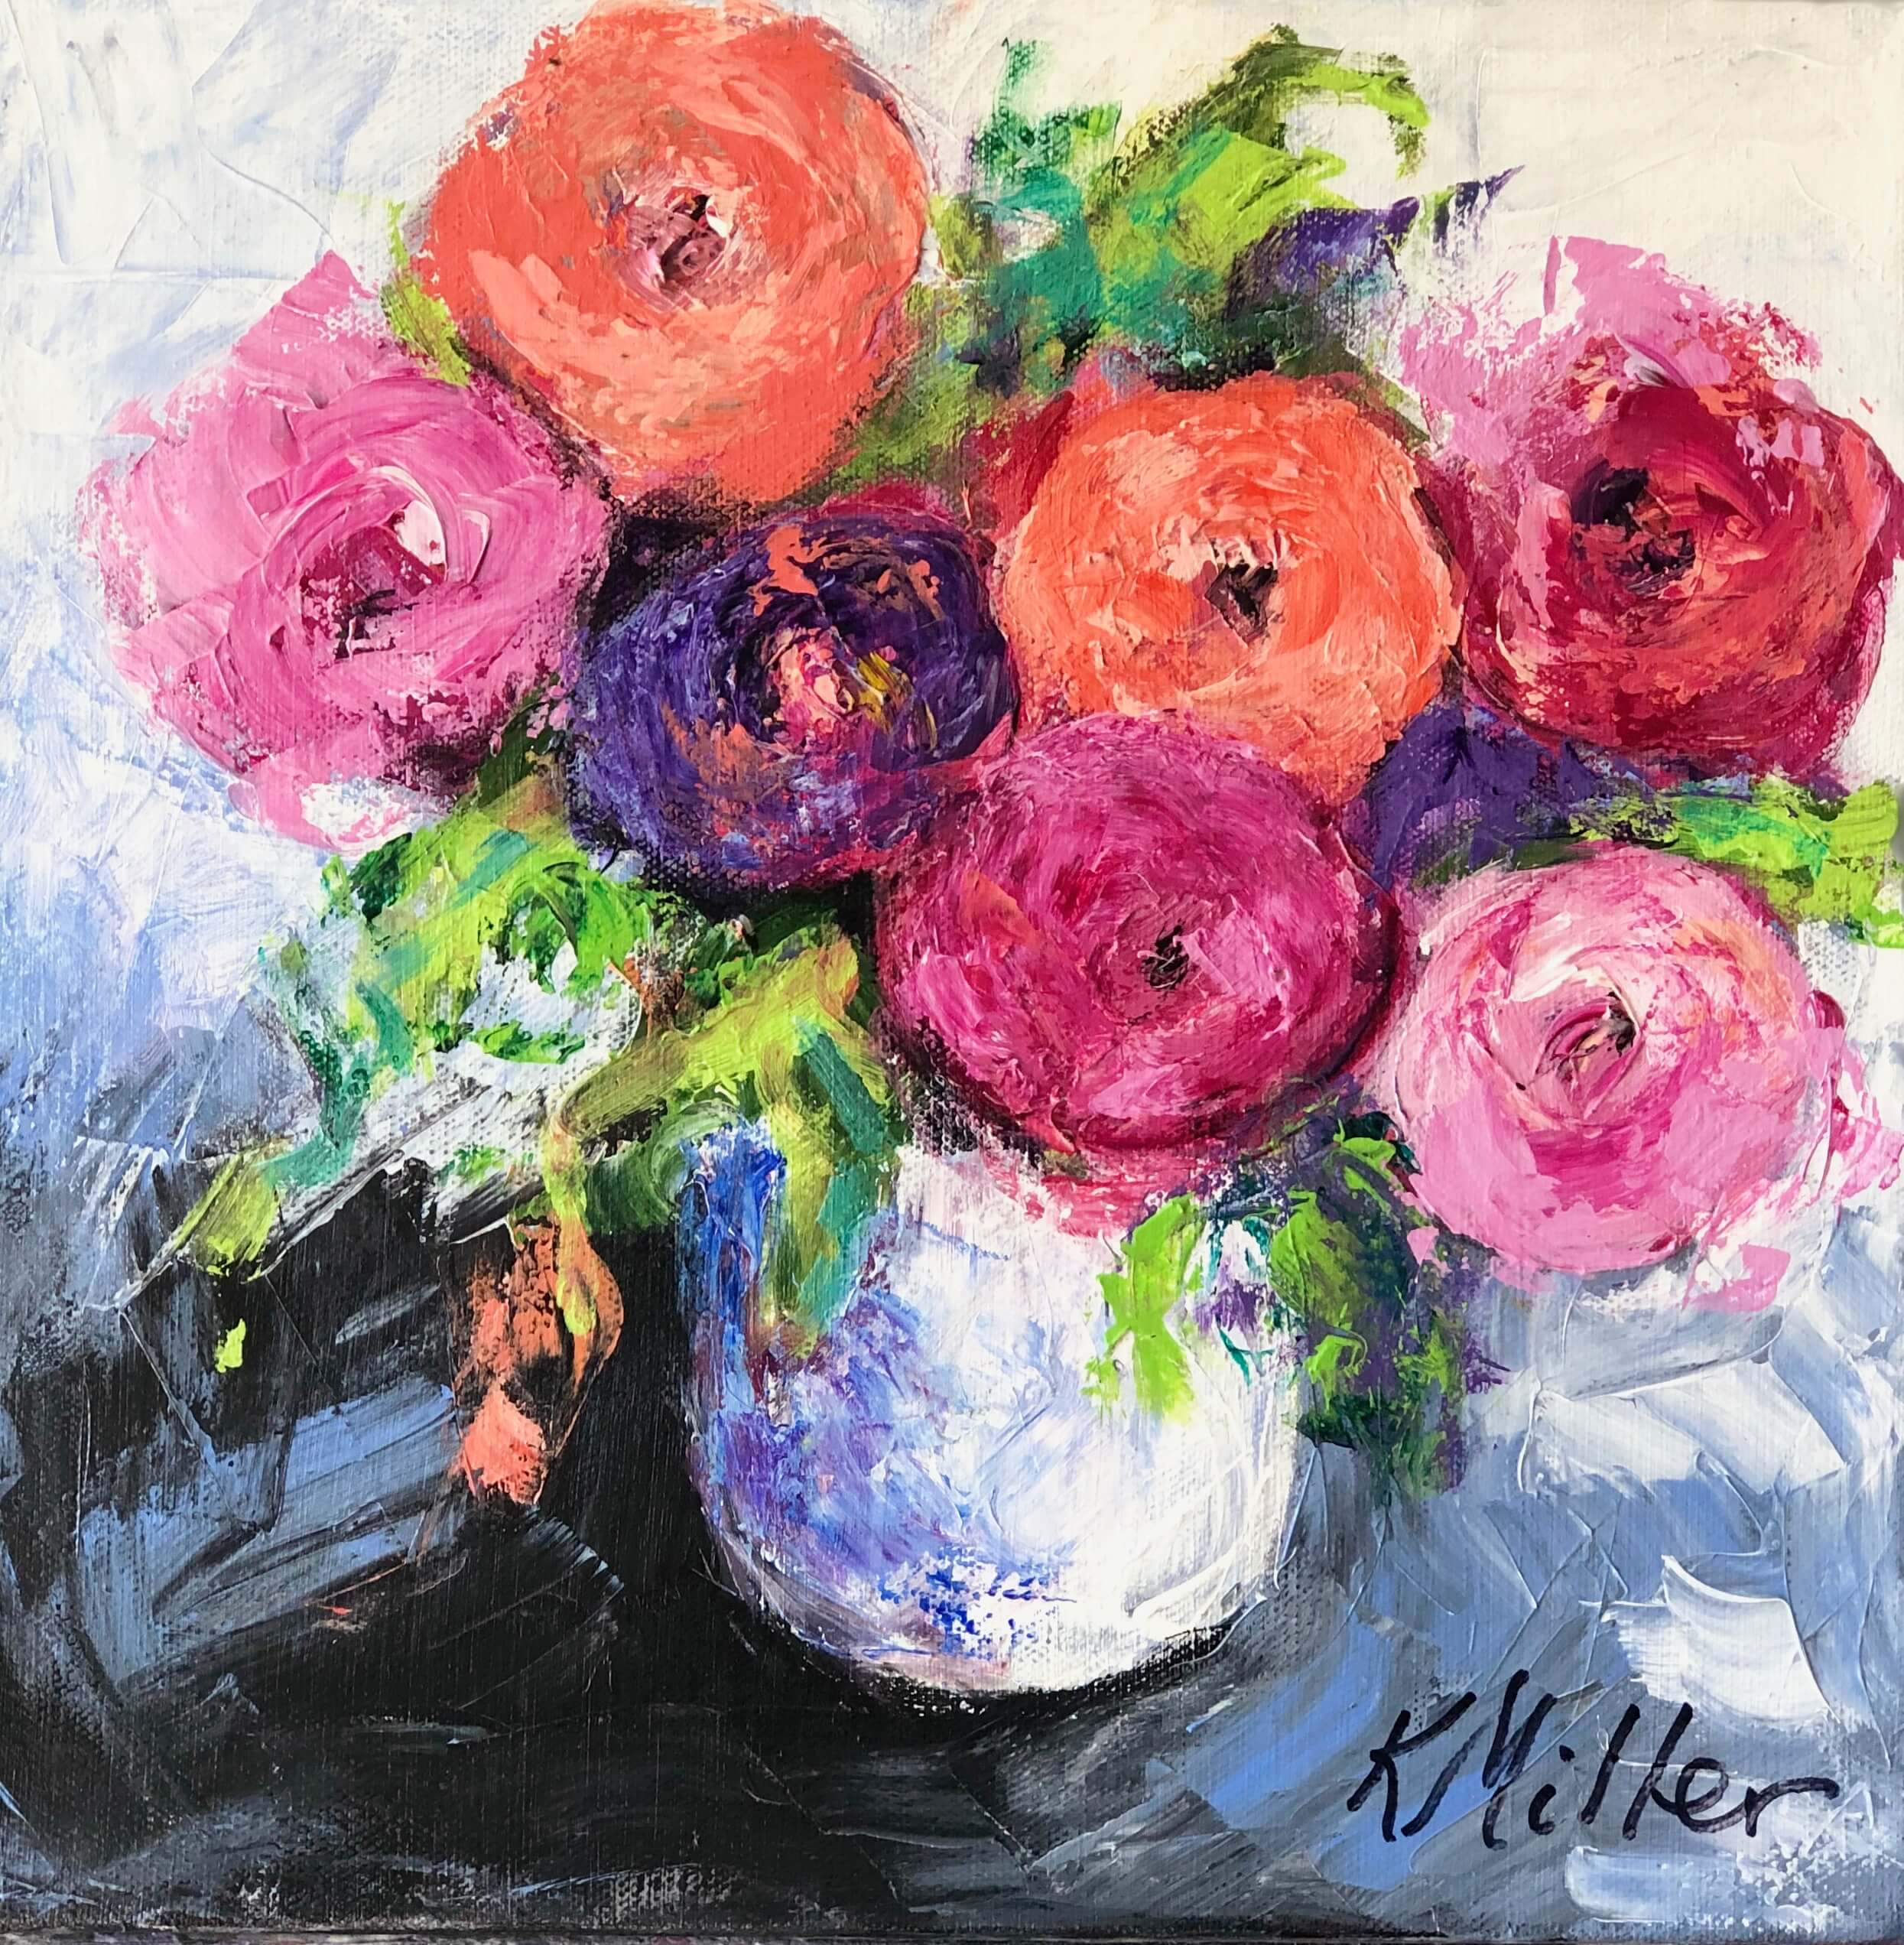 Fun Flowers on Black inspired by a Pink Ranunculus Floral Arrangement by Kate Schelter painting by Kathy Miller